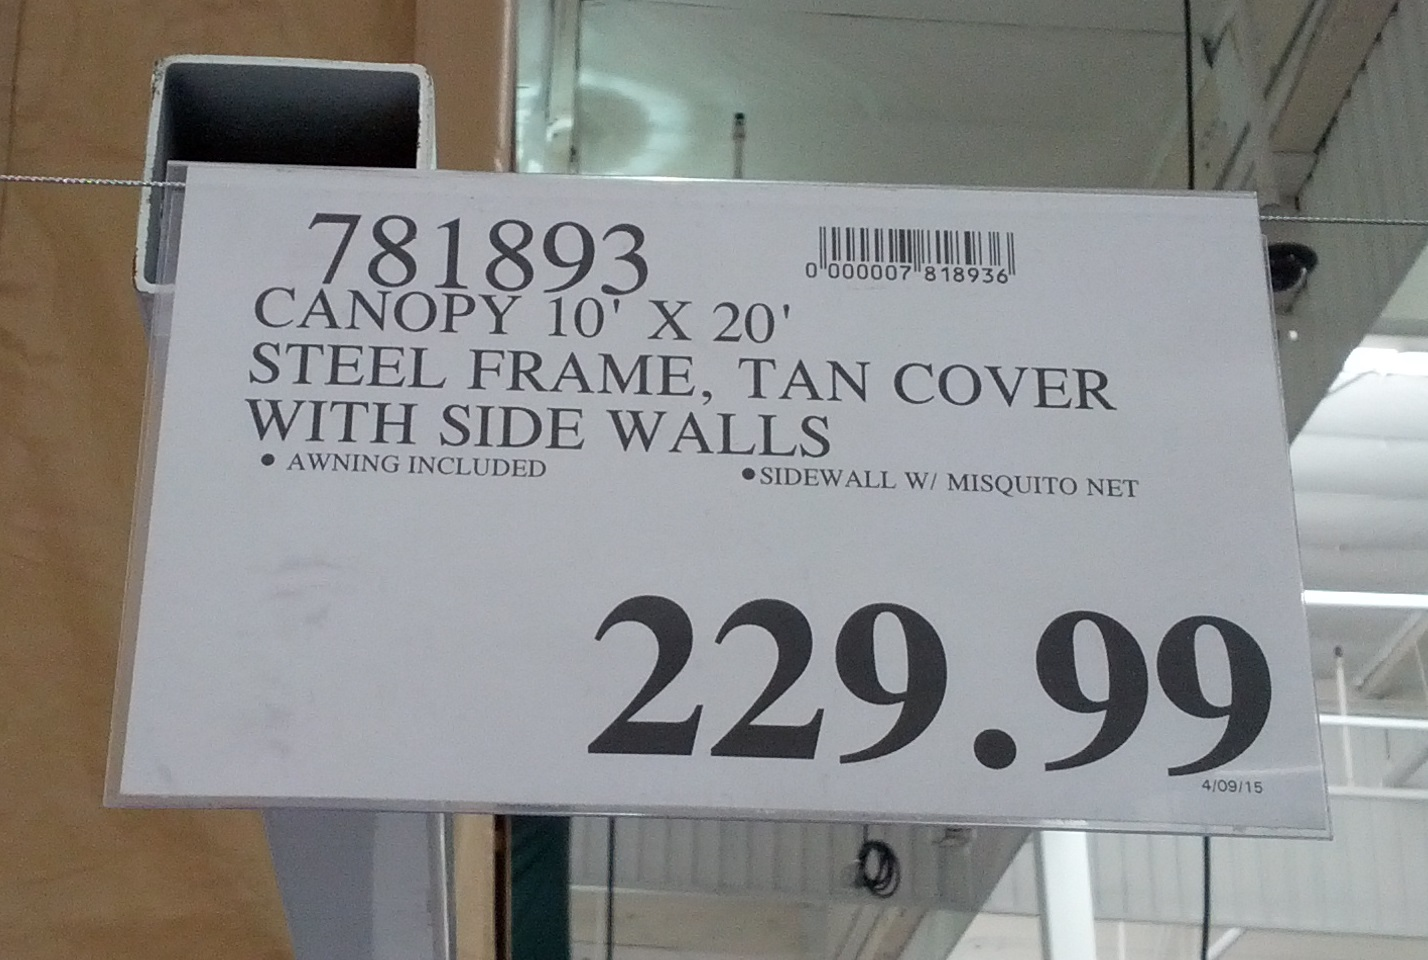 Steel Frame Canopy with Side Walls (Tan Cover) | Costco